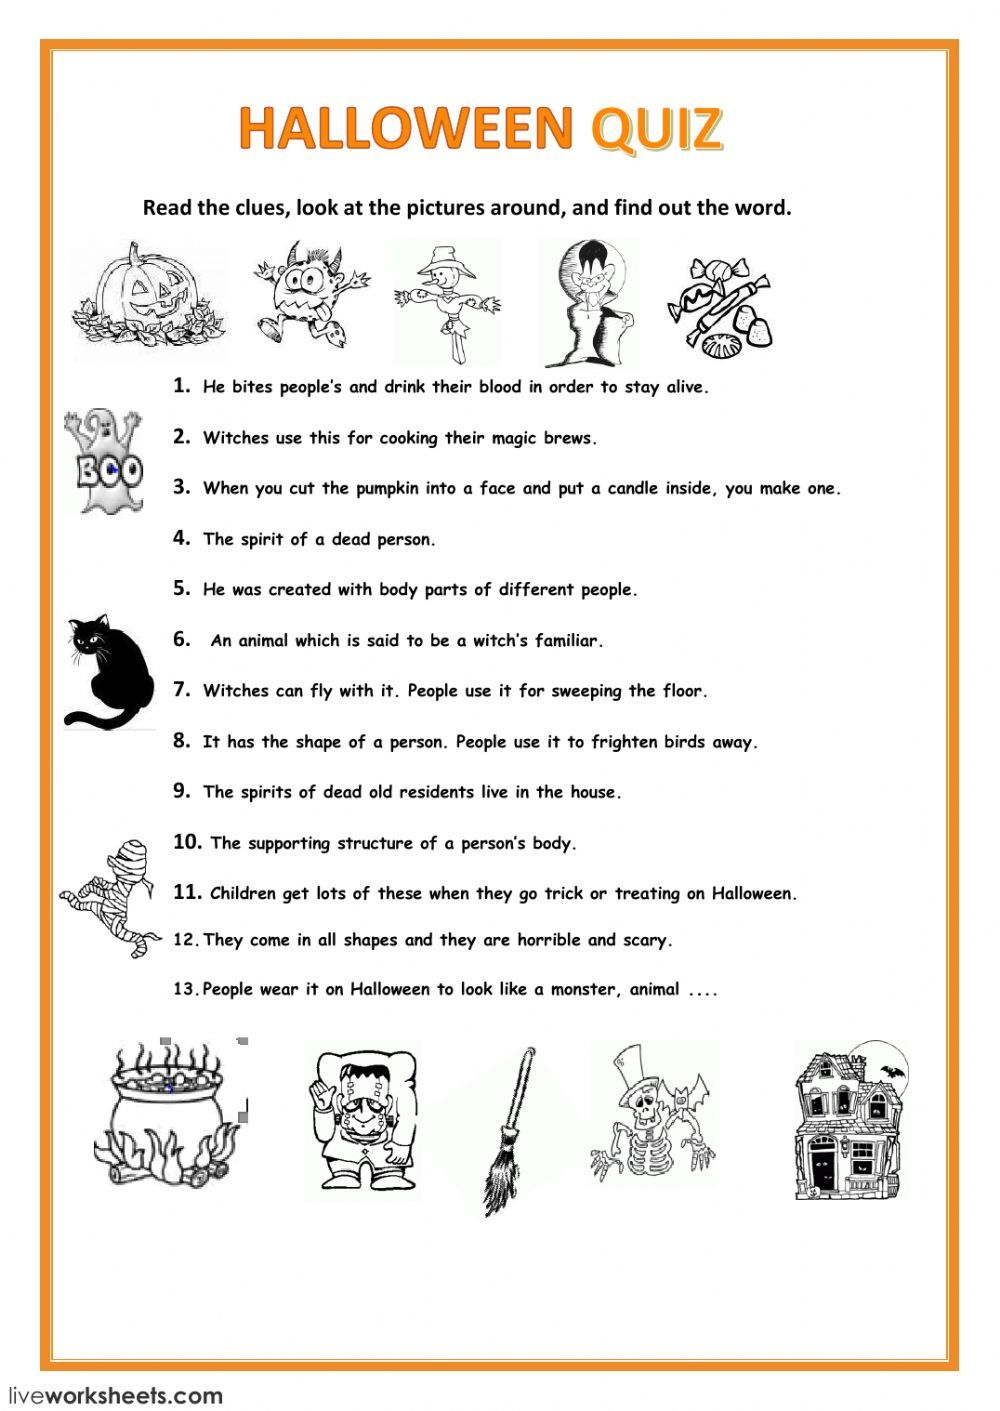 Halloween Interactive And Downloadable Worksheet. You Can Do